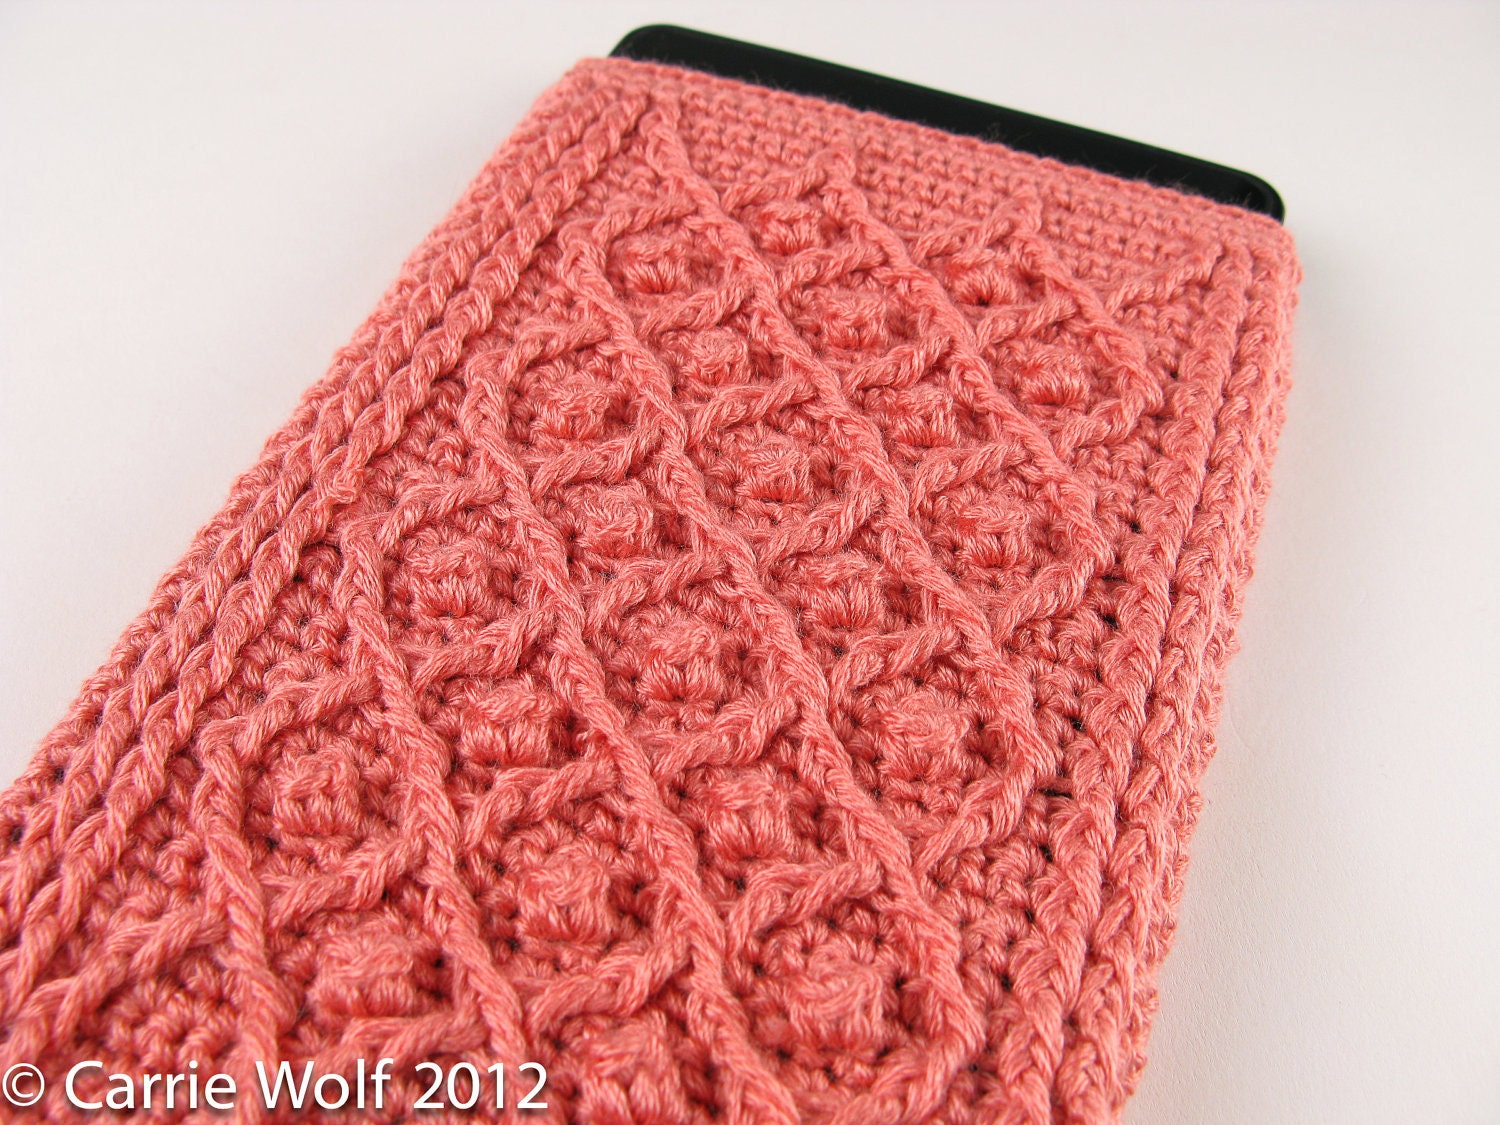 Crochet Stitches Visual Encyclopedia Pdf Free Download : Crochet Pattern Kindle Fire Cover Summer and Winter Rose Trellis ...